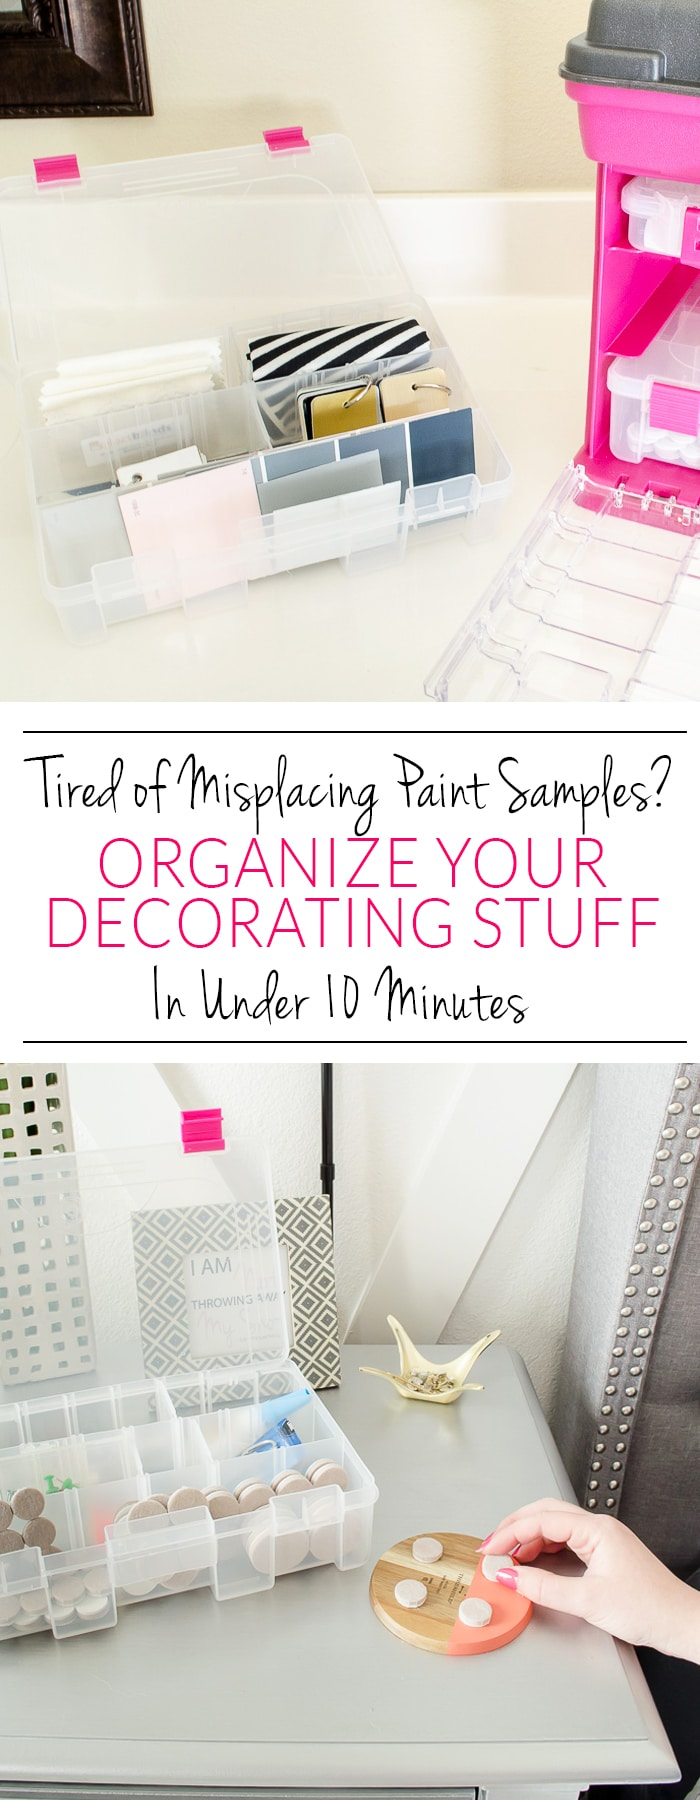 What a brilliant organizer! I could have a few of these around the house for different things, but I'm definetely going to pick up one for my paint samples, fabric swatches and command hooks!